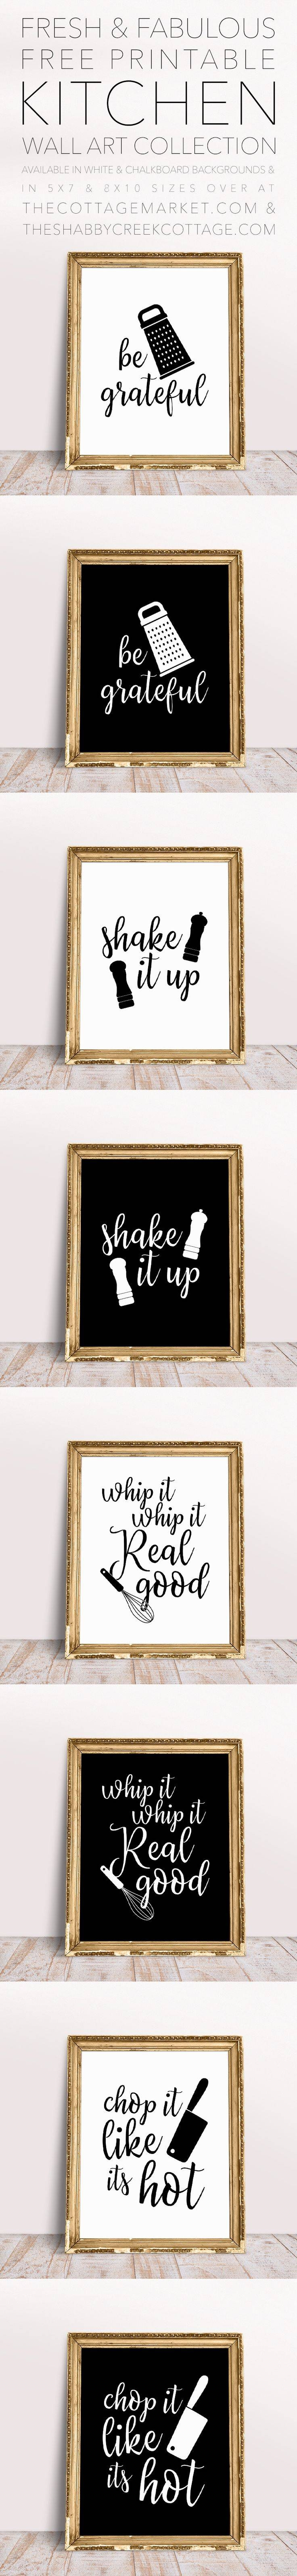 Best 25+ Kitchen Wall Art Ideas On Pinterest | Kitchen Prints Intended For Most Popular Kitchen Wall Art (View 4 of 25)